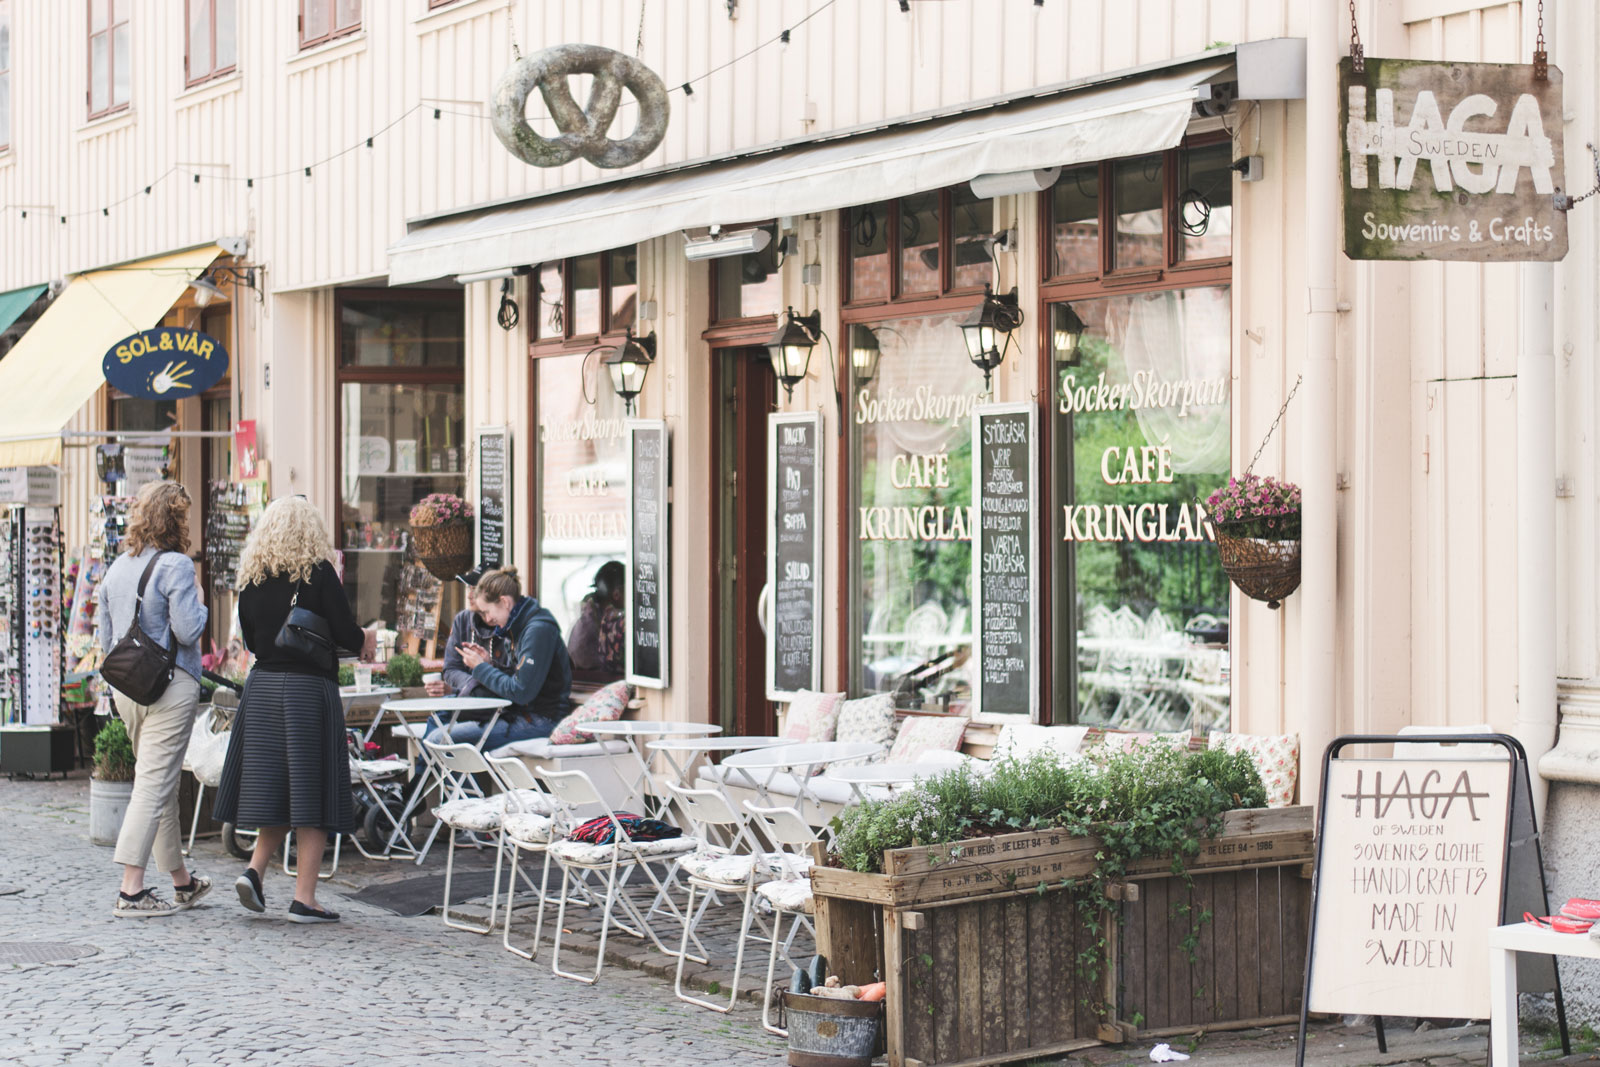 Cafe-Kringlan-Haga-Gothenburg